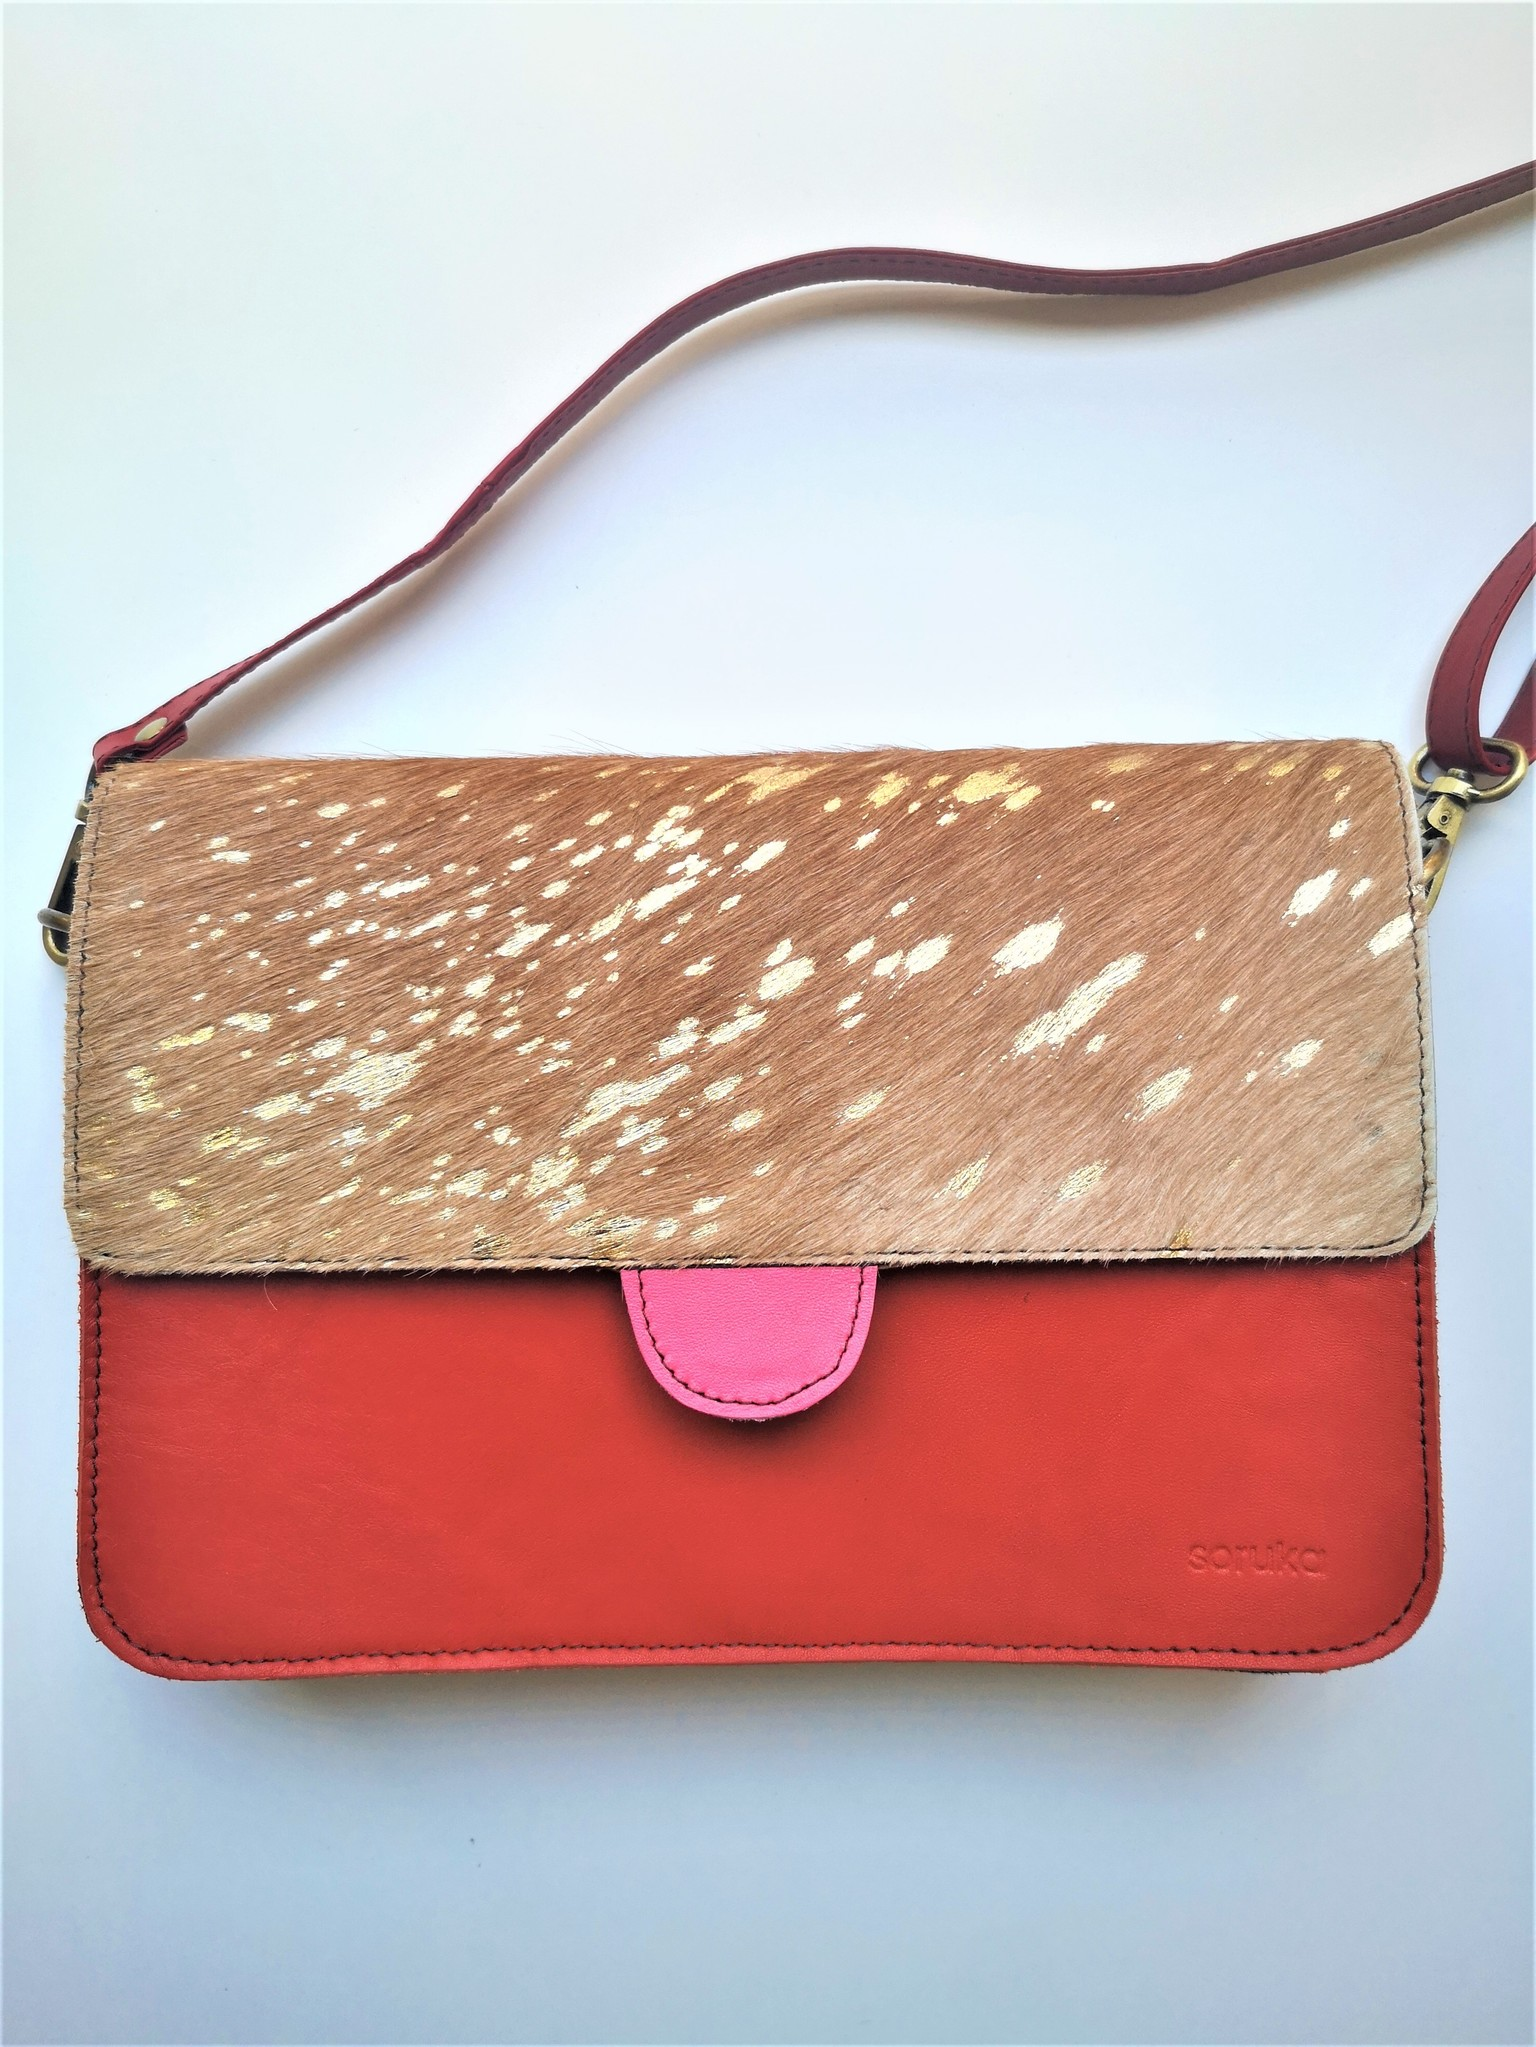 Leather Bag SQ Medium Red Gold-2